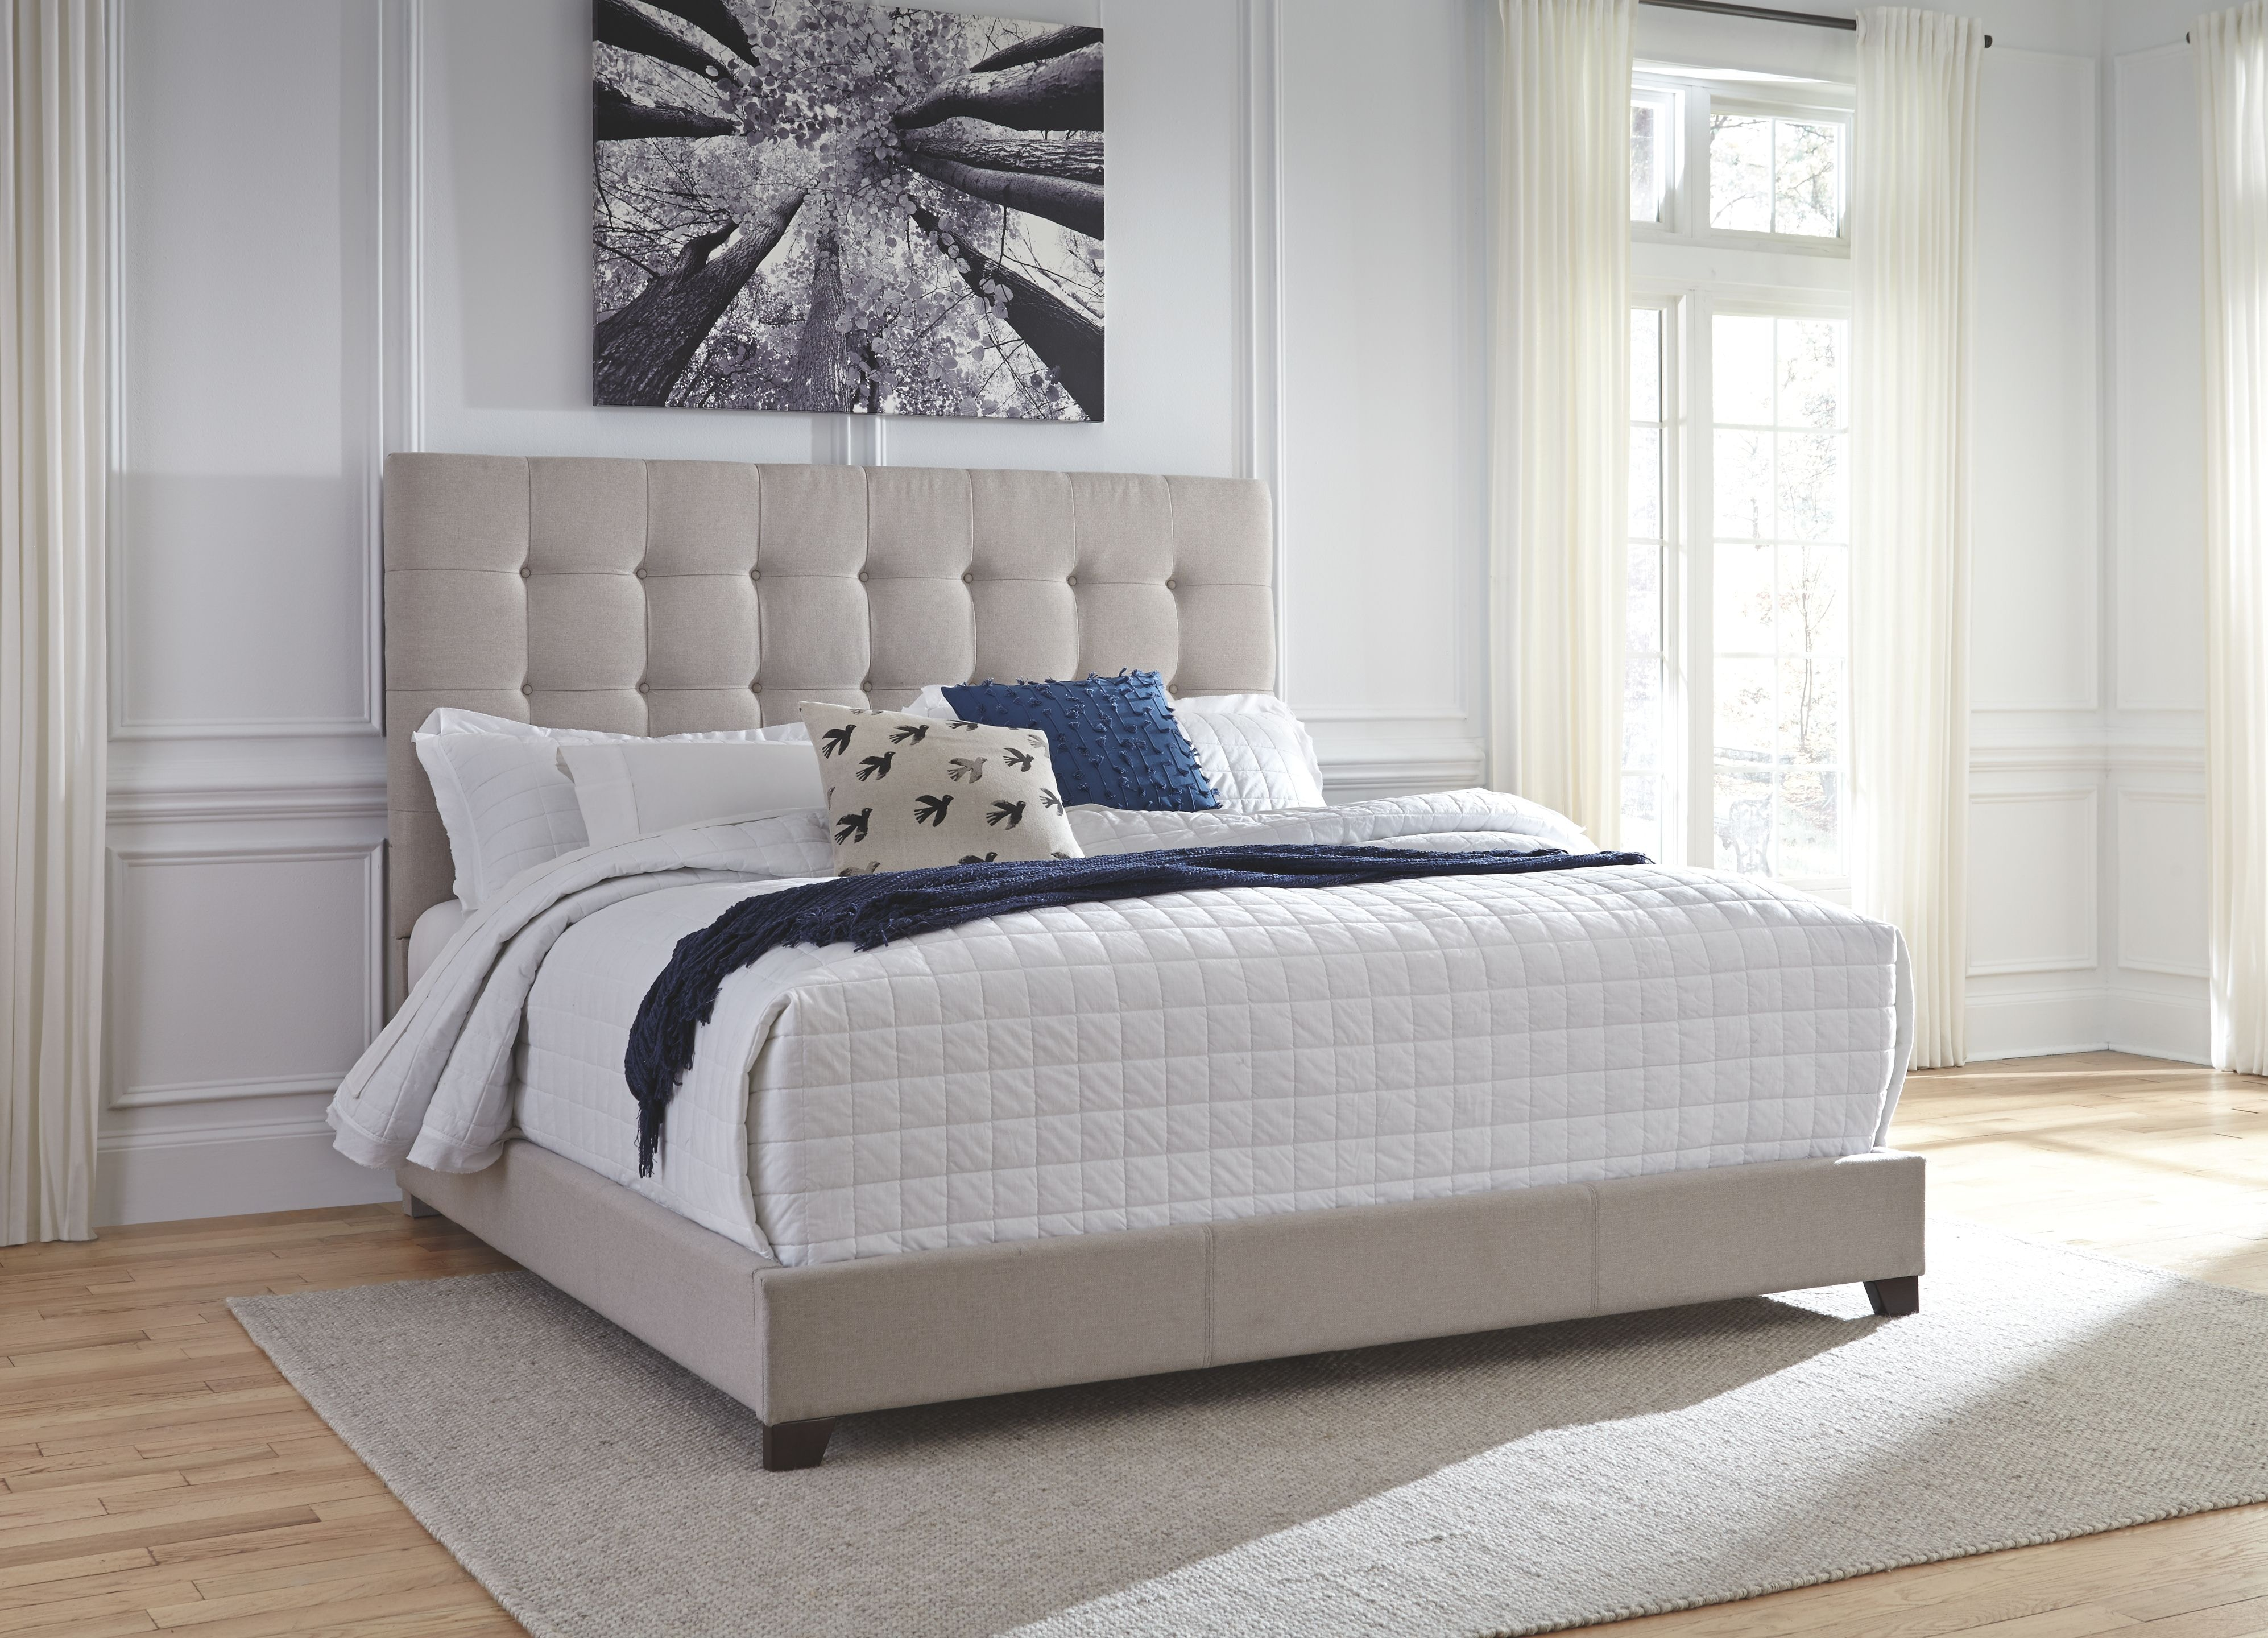 Signature Design By Ashley Bedroom Queen Upholstered Bed